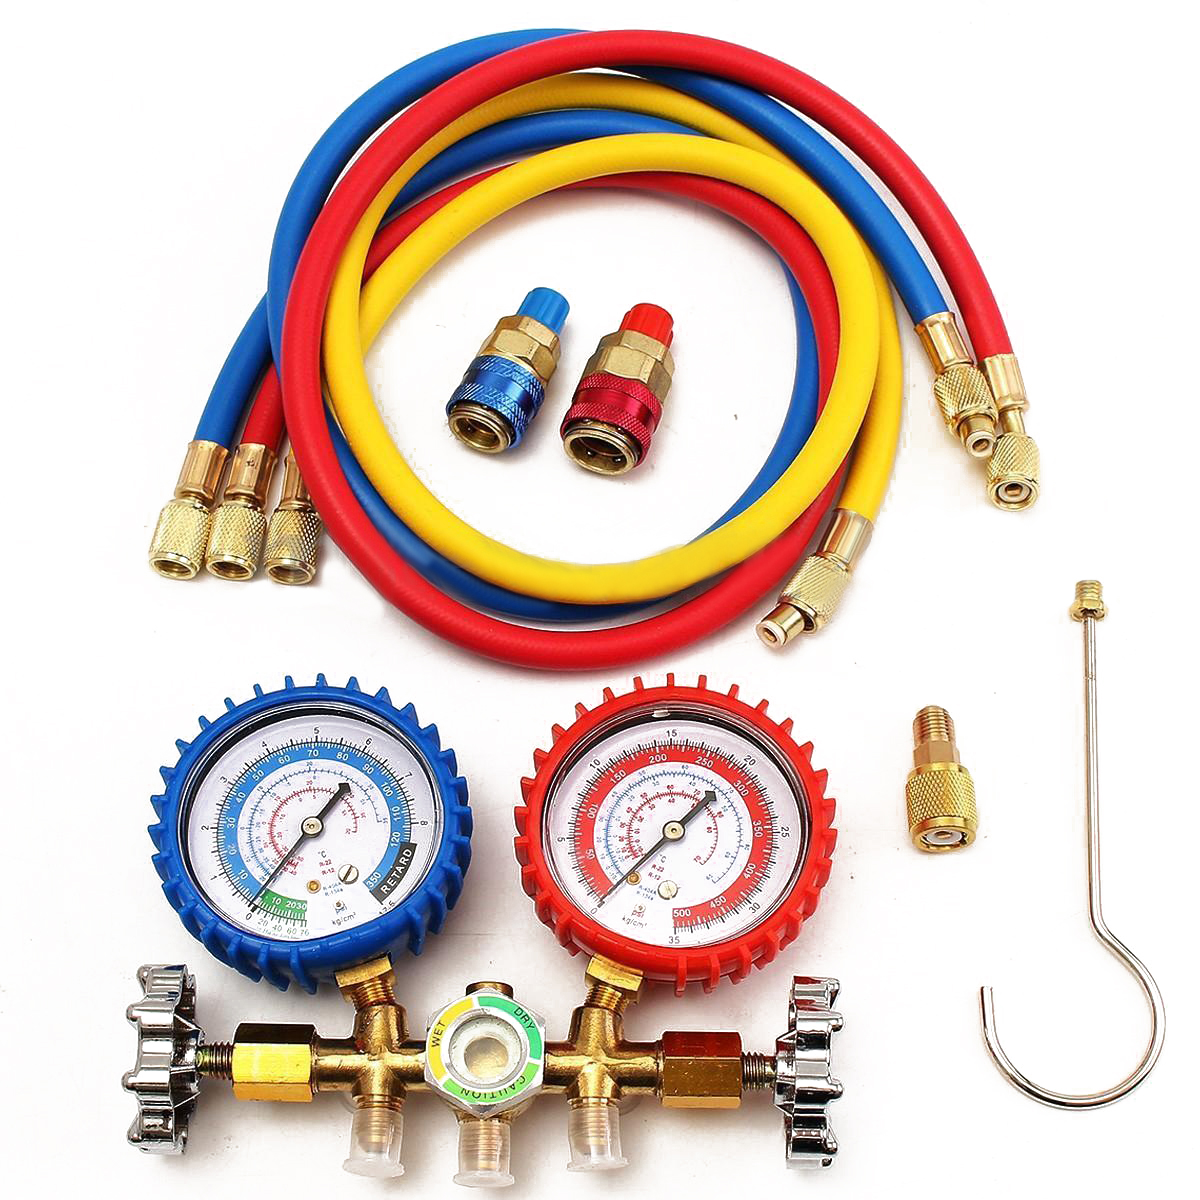 R134a Manifold Gauge 90cm for R12 R22 R502 HVAC A/C Refrigerant with Charging Hose Quick Couplers Straight Adapter Mayitr r134a r12 r22 r404a a c manifold gauge set with hose for household automobile a c air conditioning